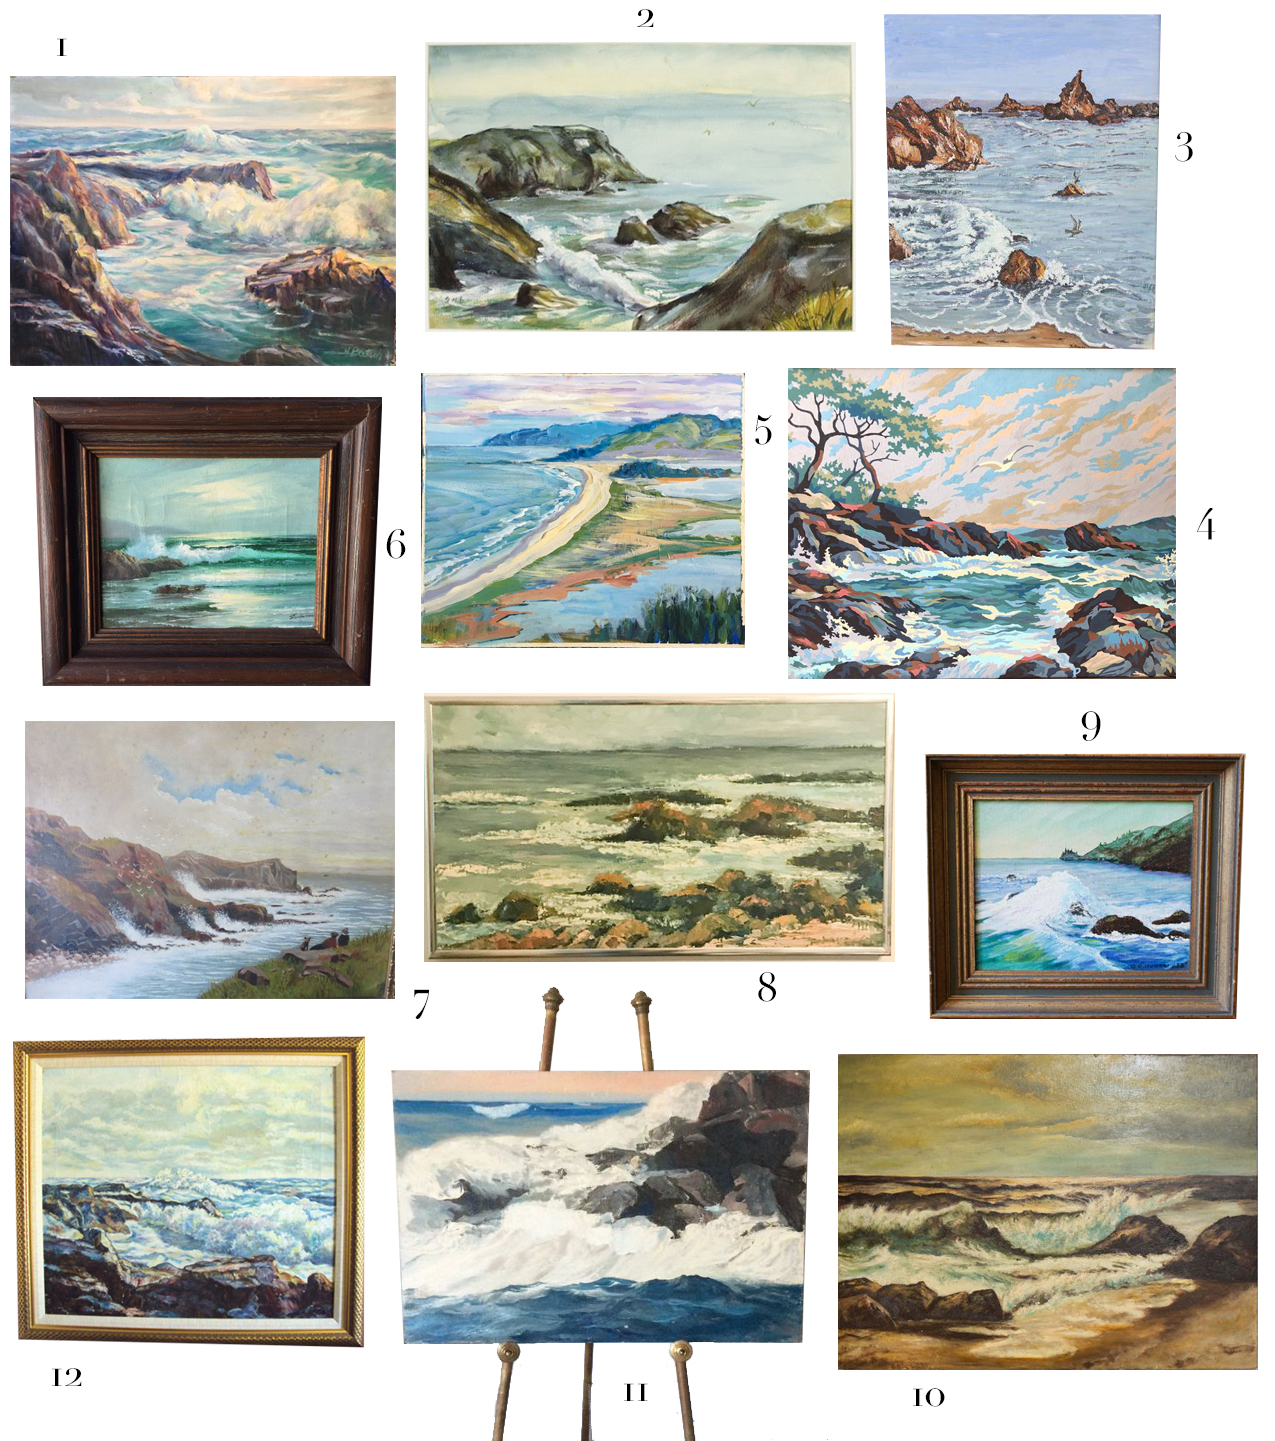 Combine vintage style and seaside charm with a collection of antique seascapes sourced from Etsy. #interiordesign #roundup #etsy #nautical